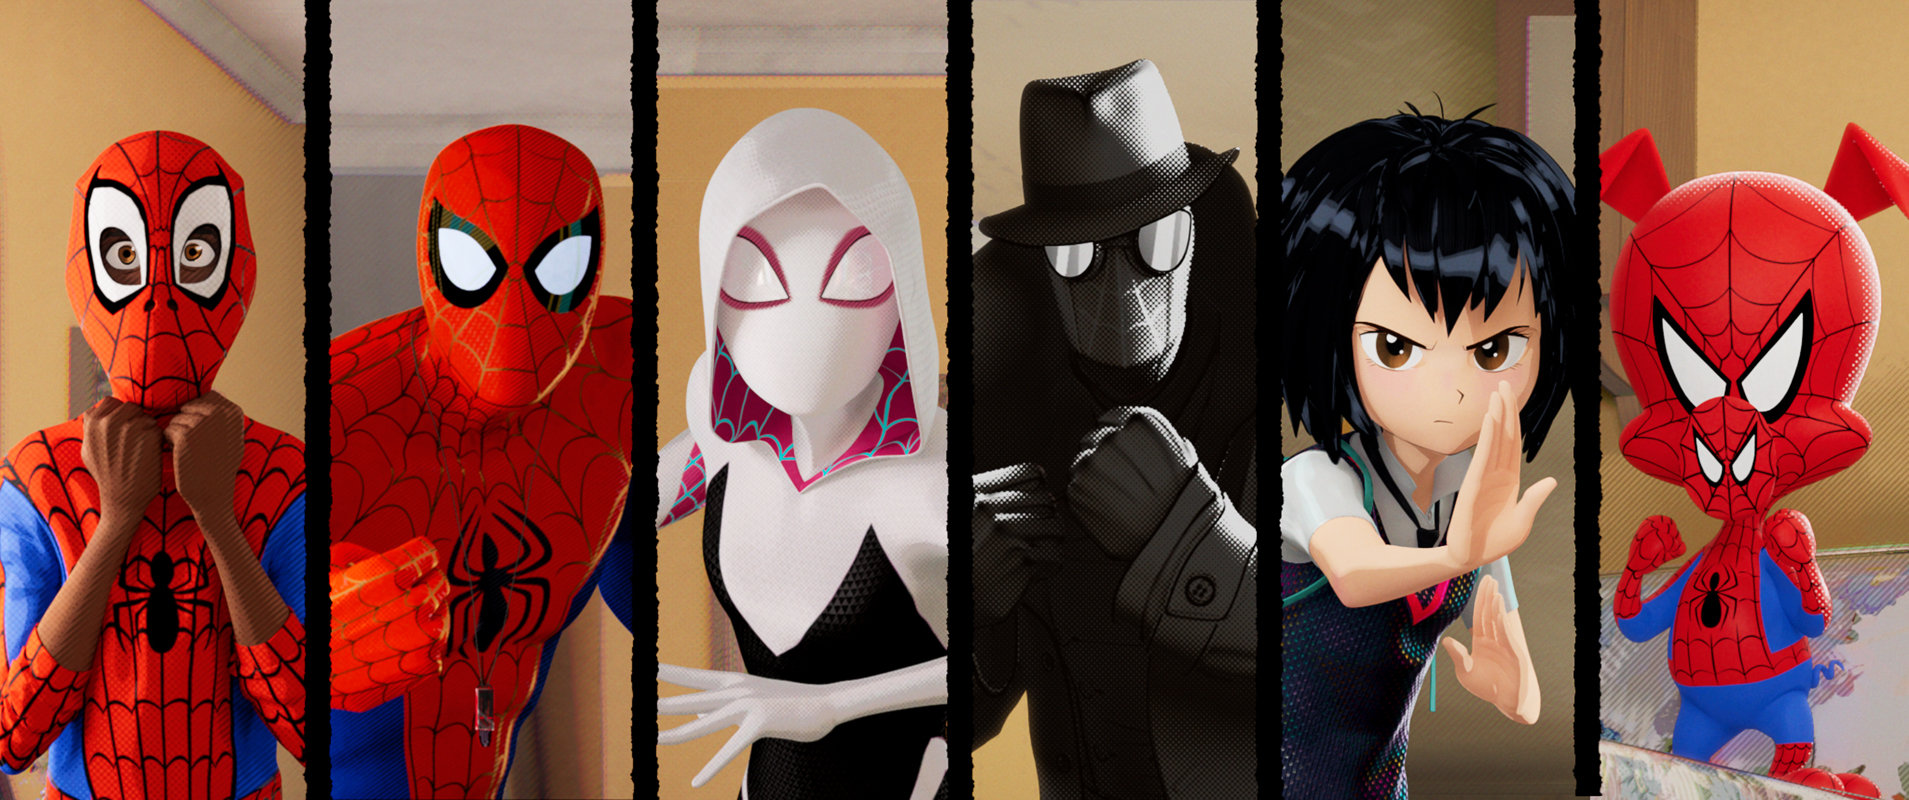 ART OF THE CUT on editing Spider-Man: Into the Spider-Verse 19